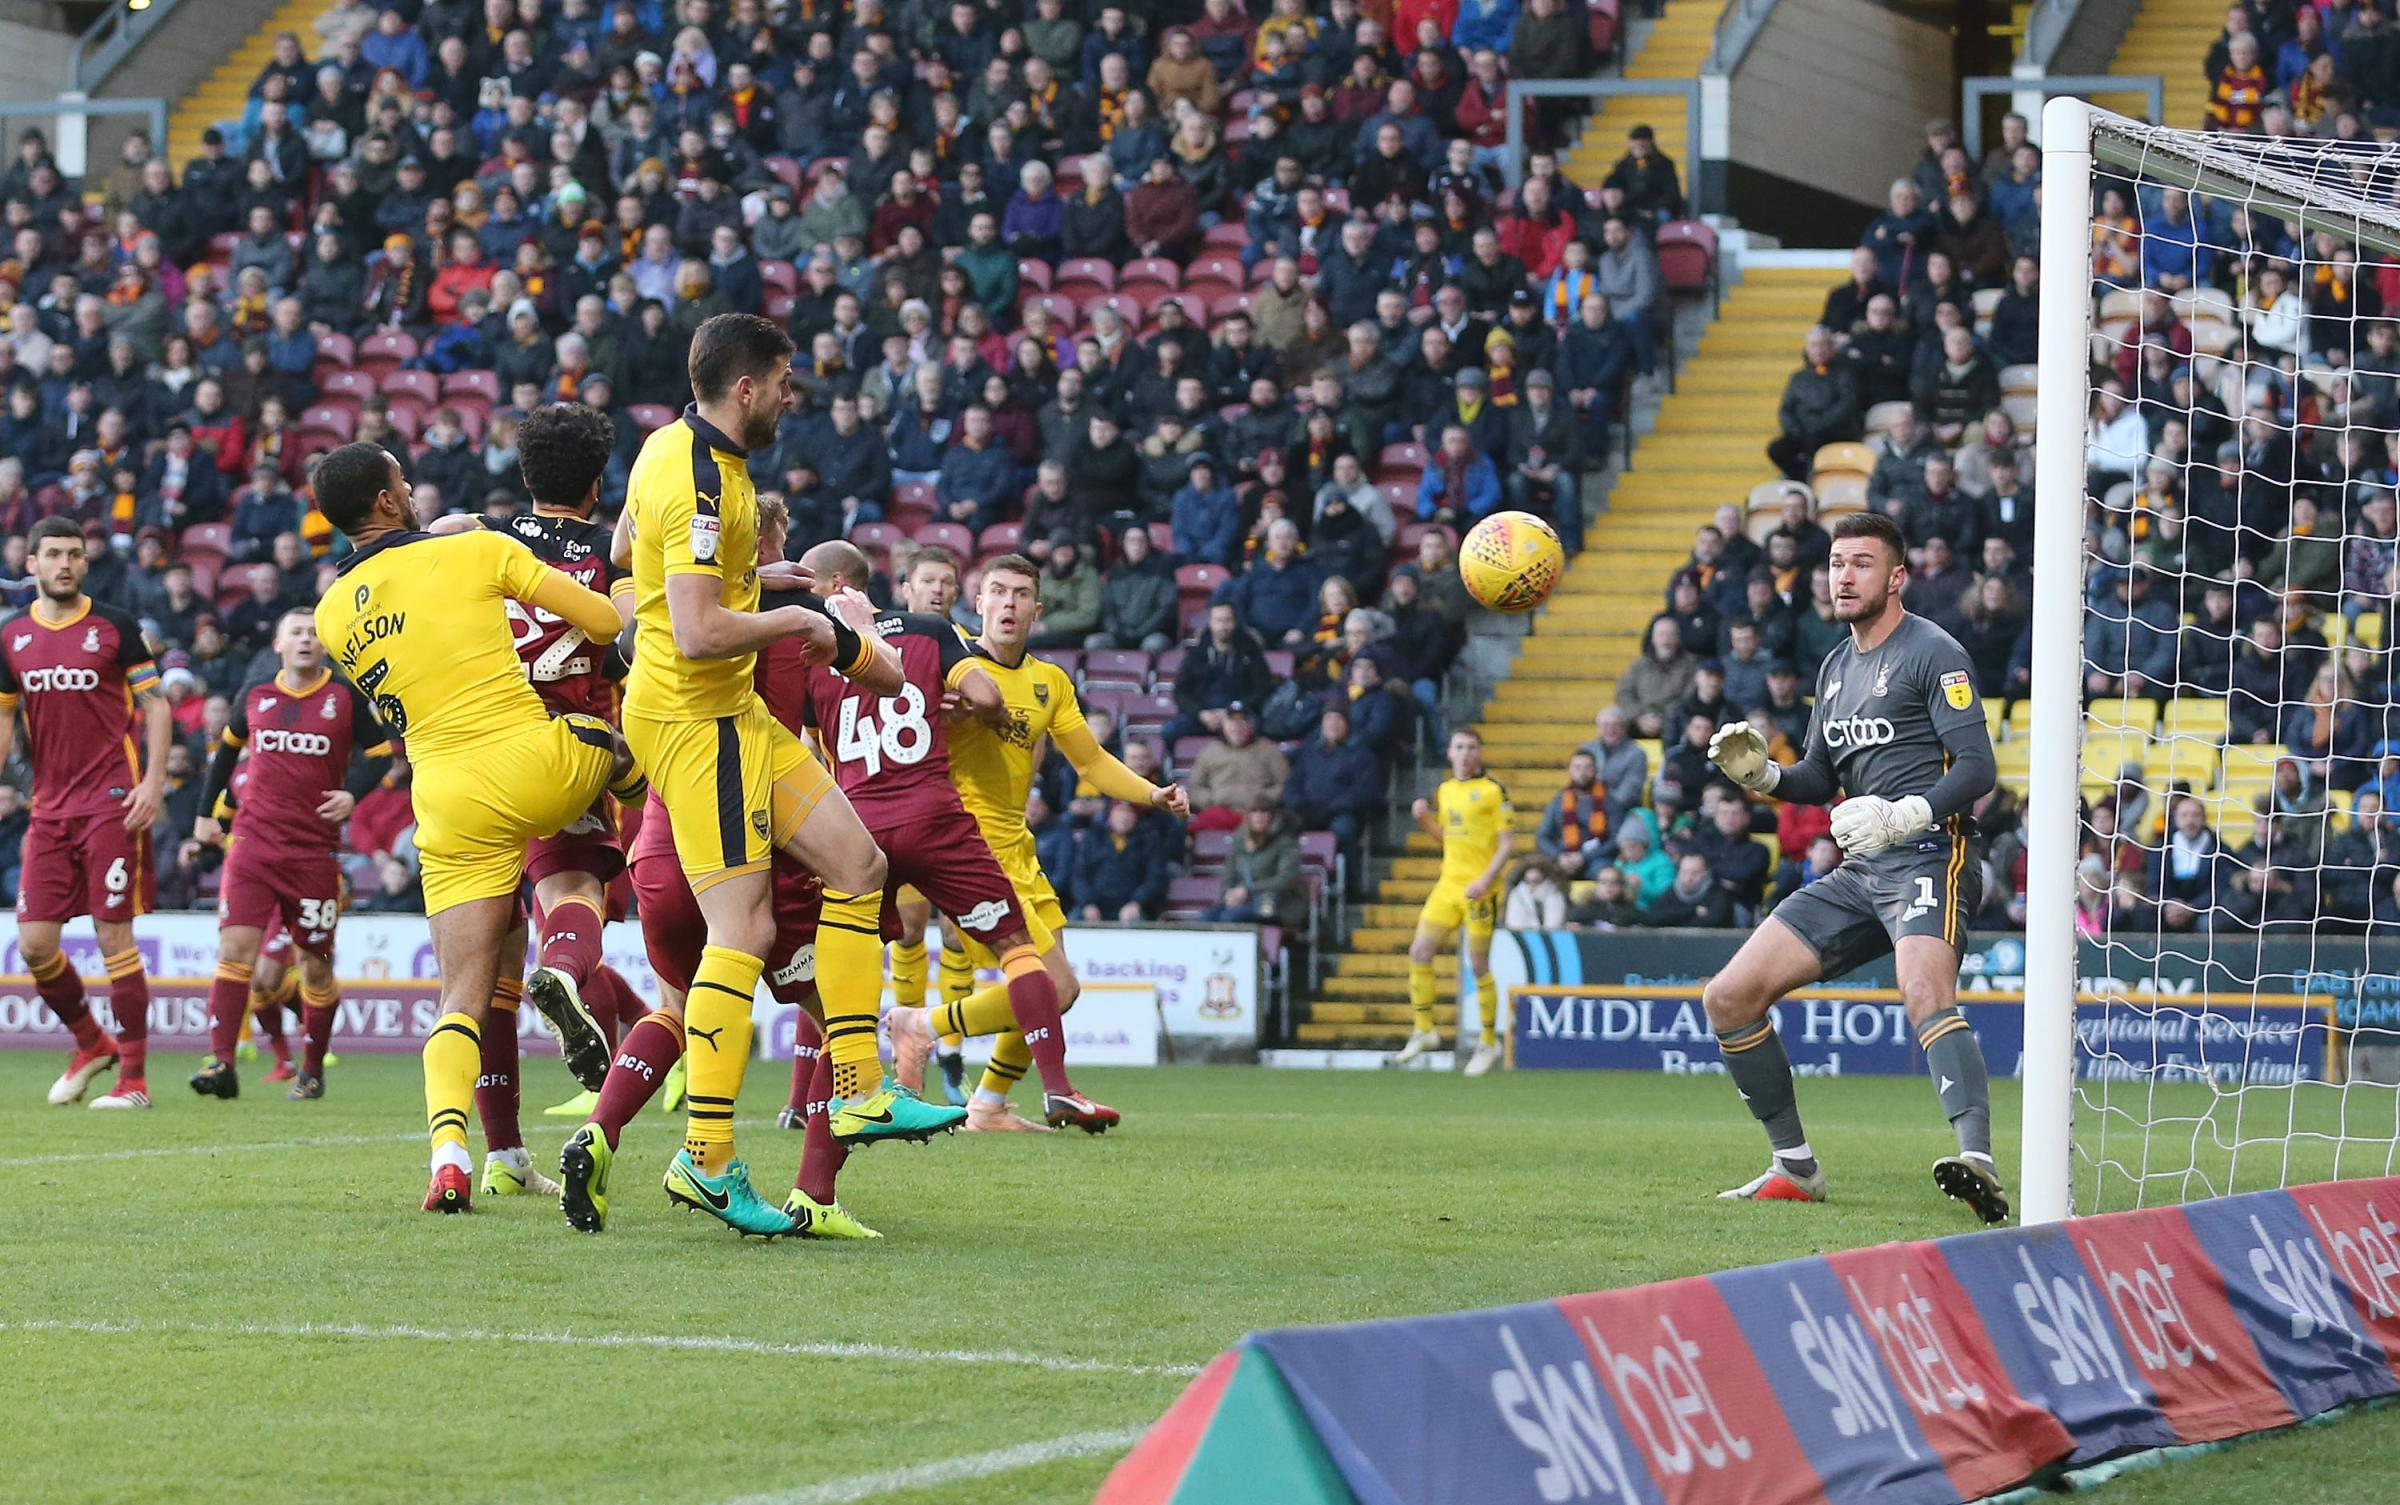 Curtis Nelson heads an early corner wide during Oxford United's 2-0 defeat at Bradford City Picture: Richard Parkes